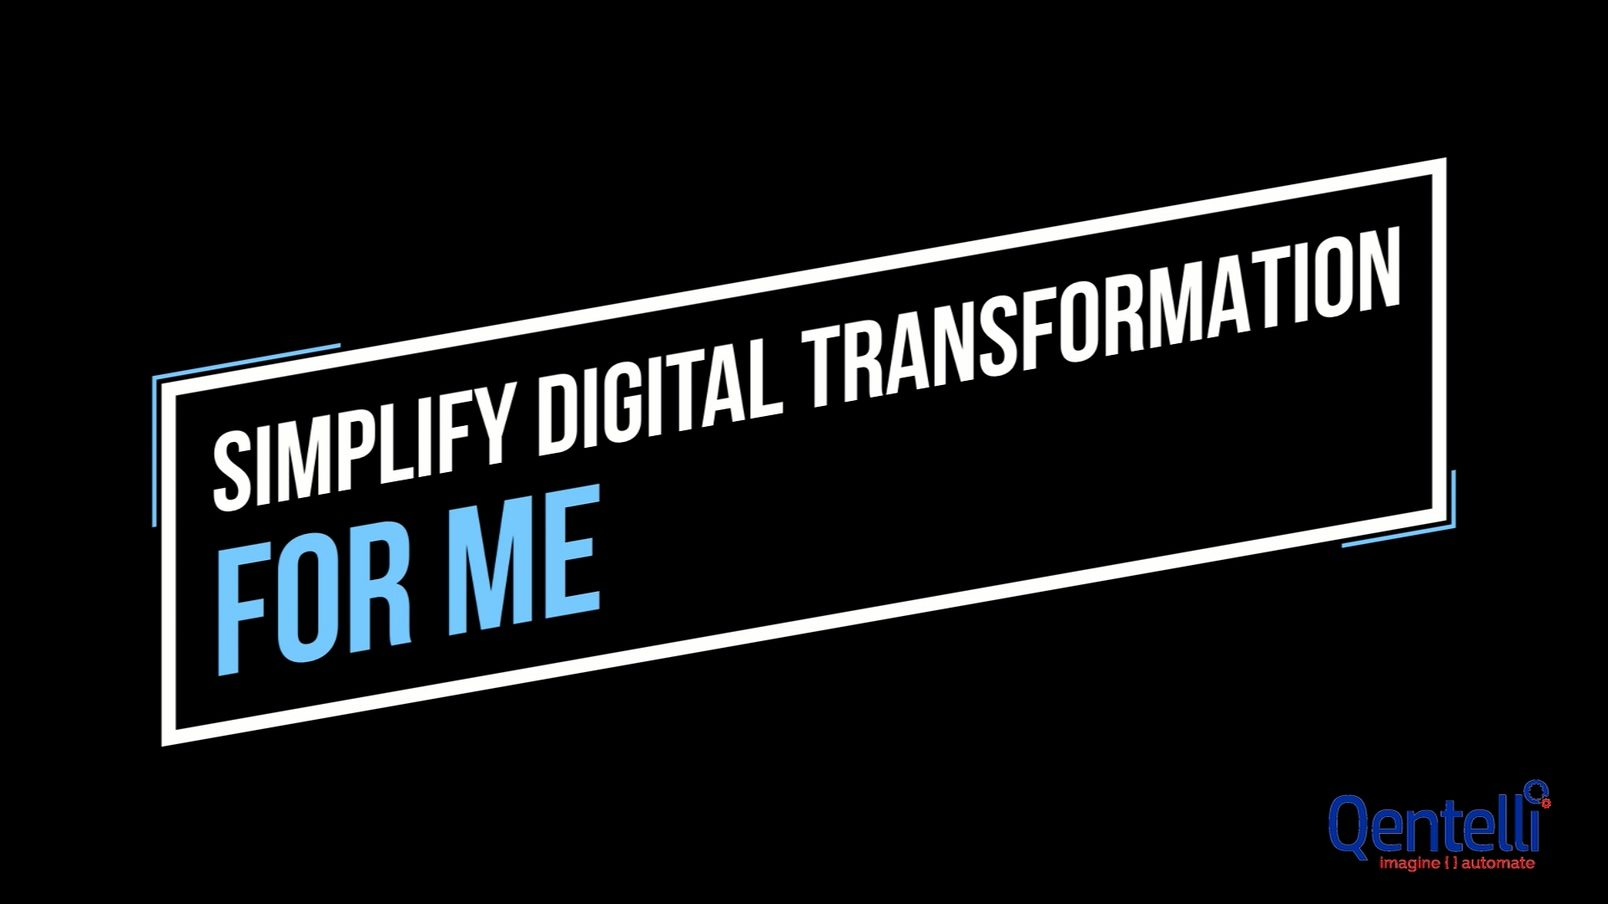 Digital Transformation Explanatory Videos